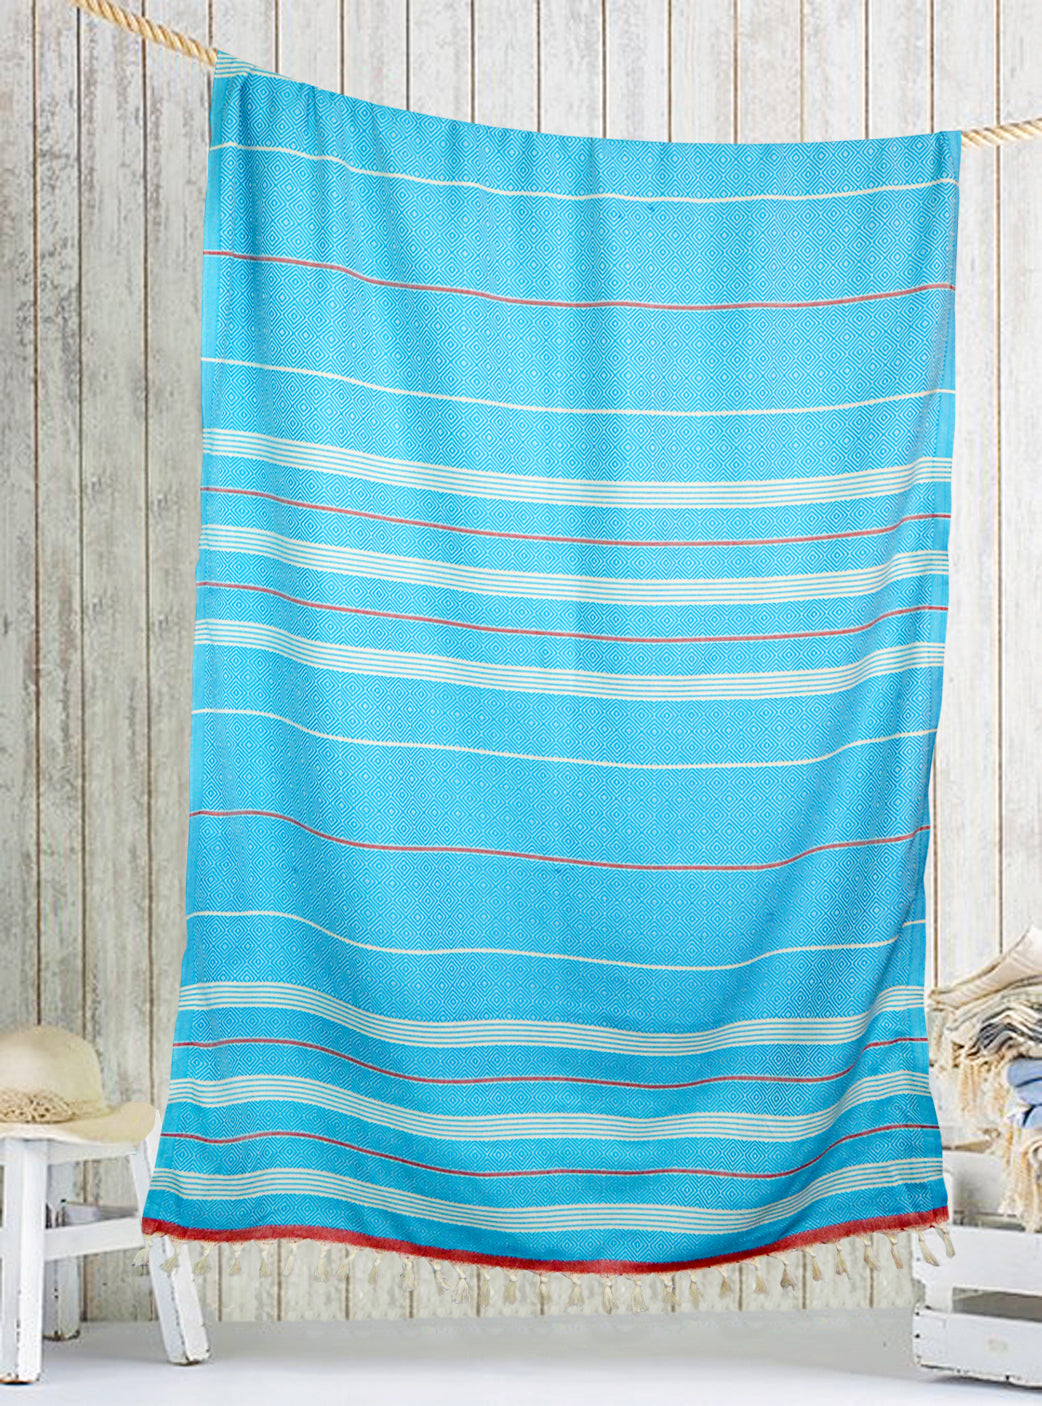 Turquoise/Red Turkish peshtemal towel, hand-embroidered, pure cotton, with a hand-knotted fringe at both ends and long stripes pattern.